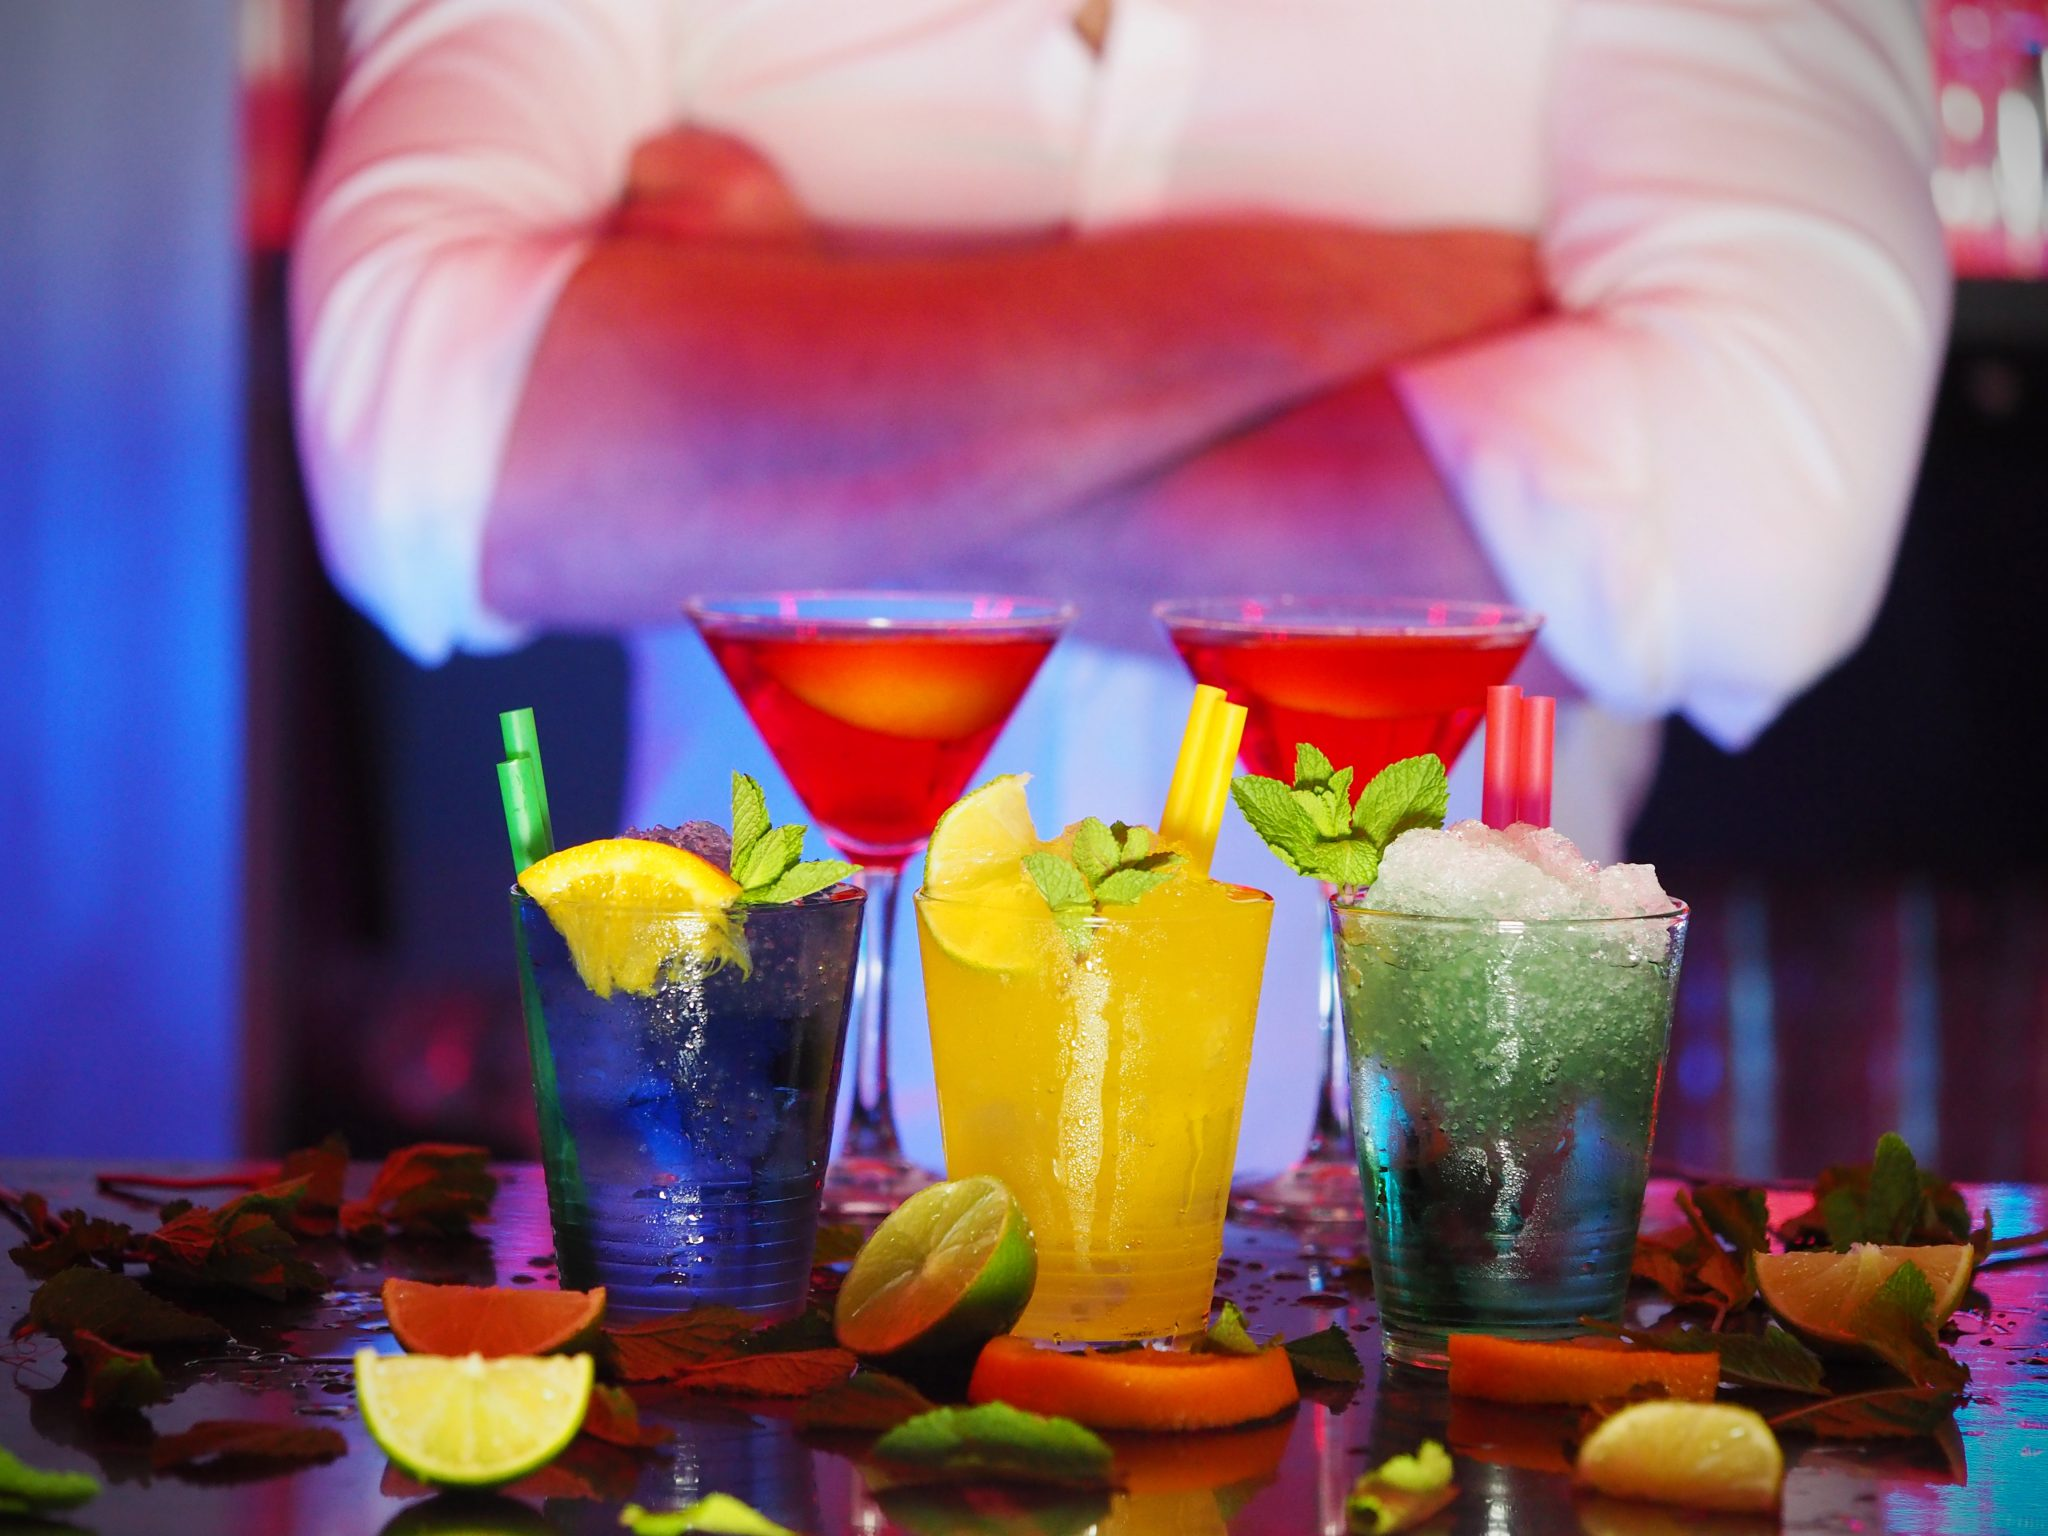 How Many Calories Does Your Favorite Liquor Have?